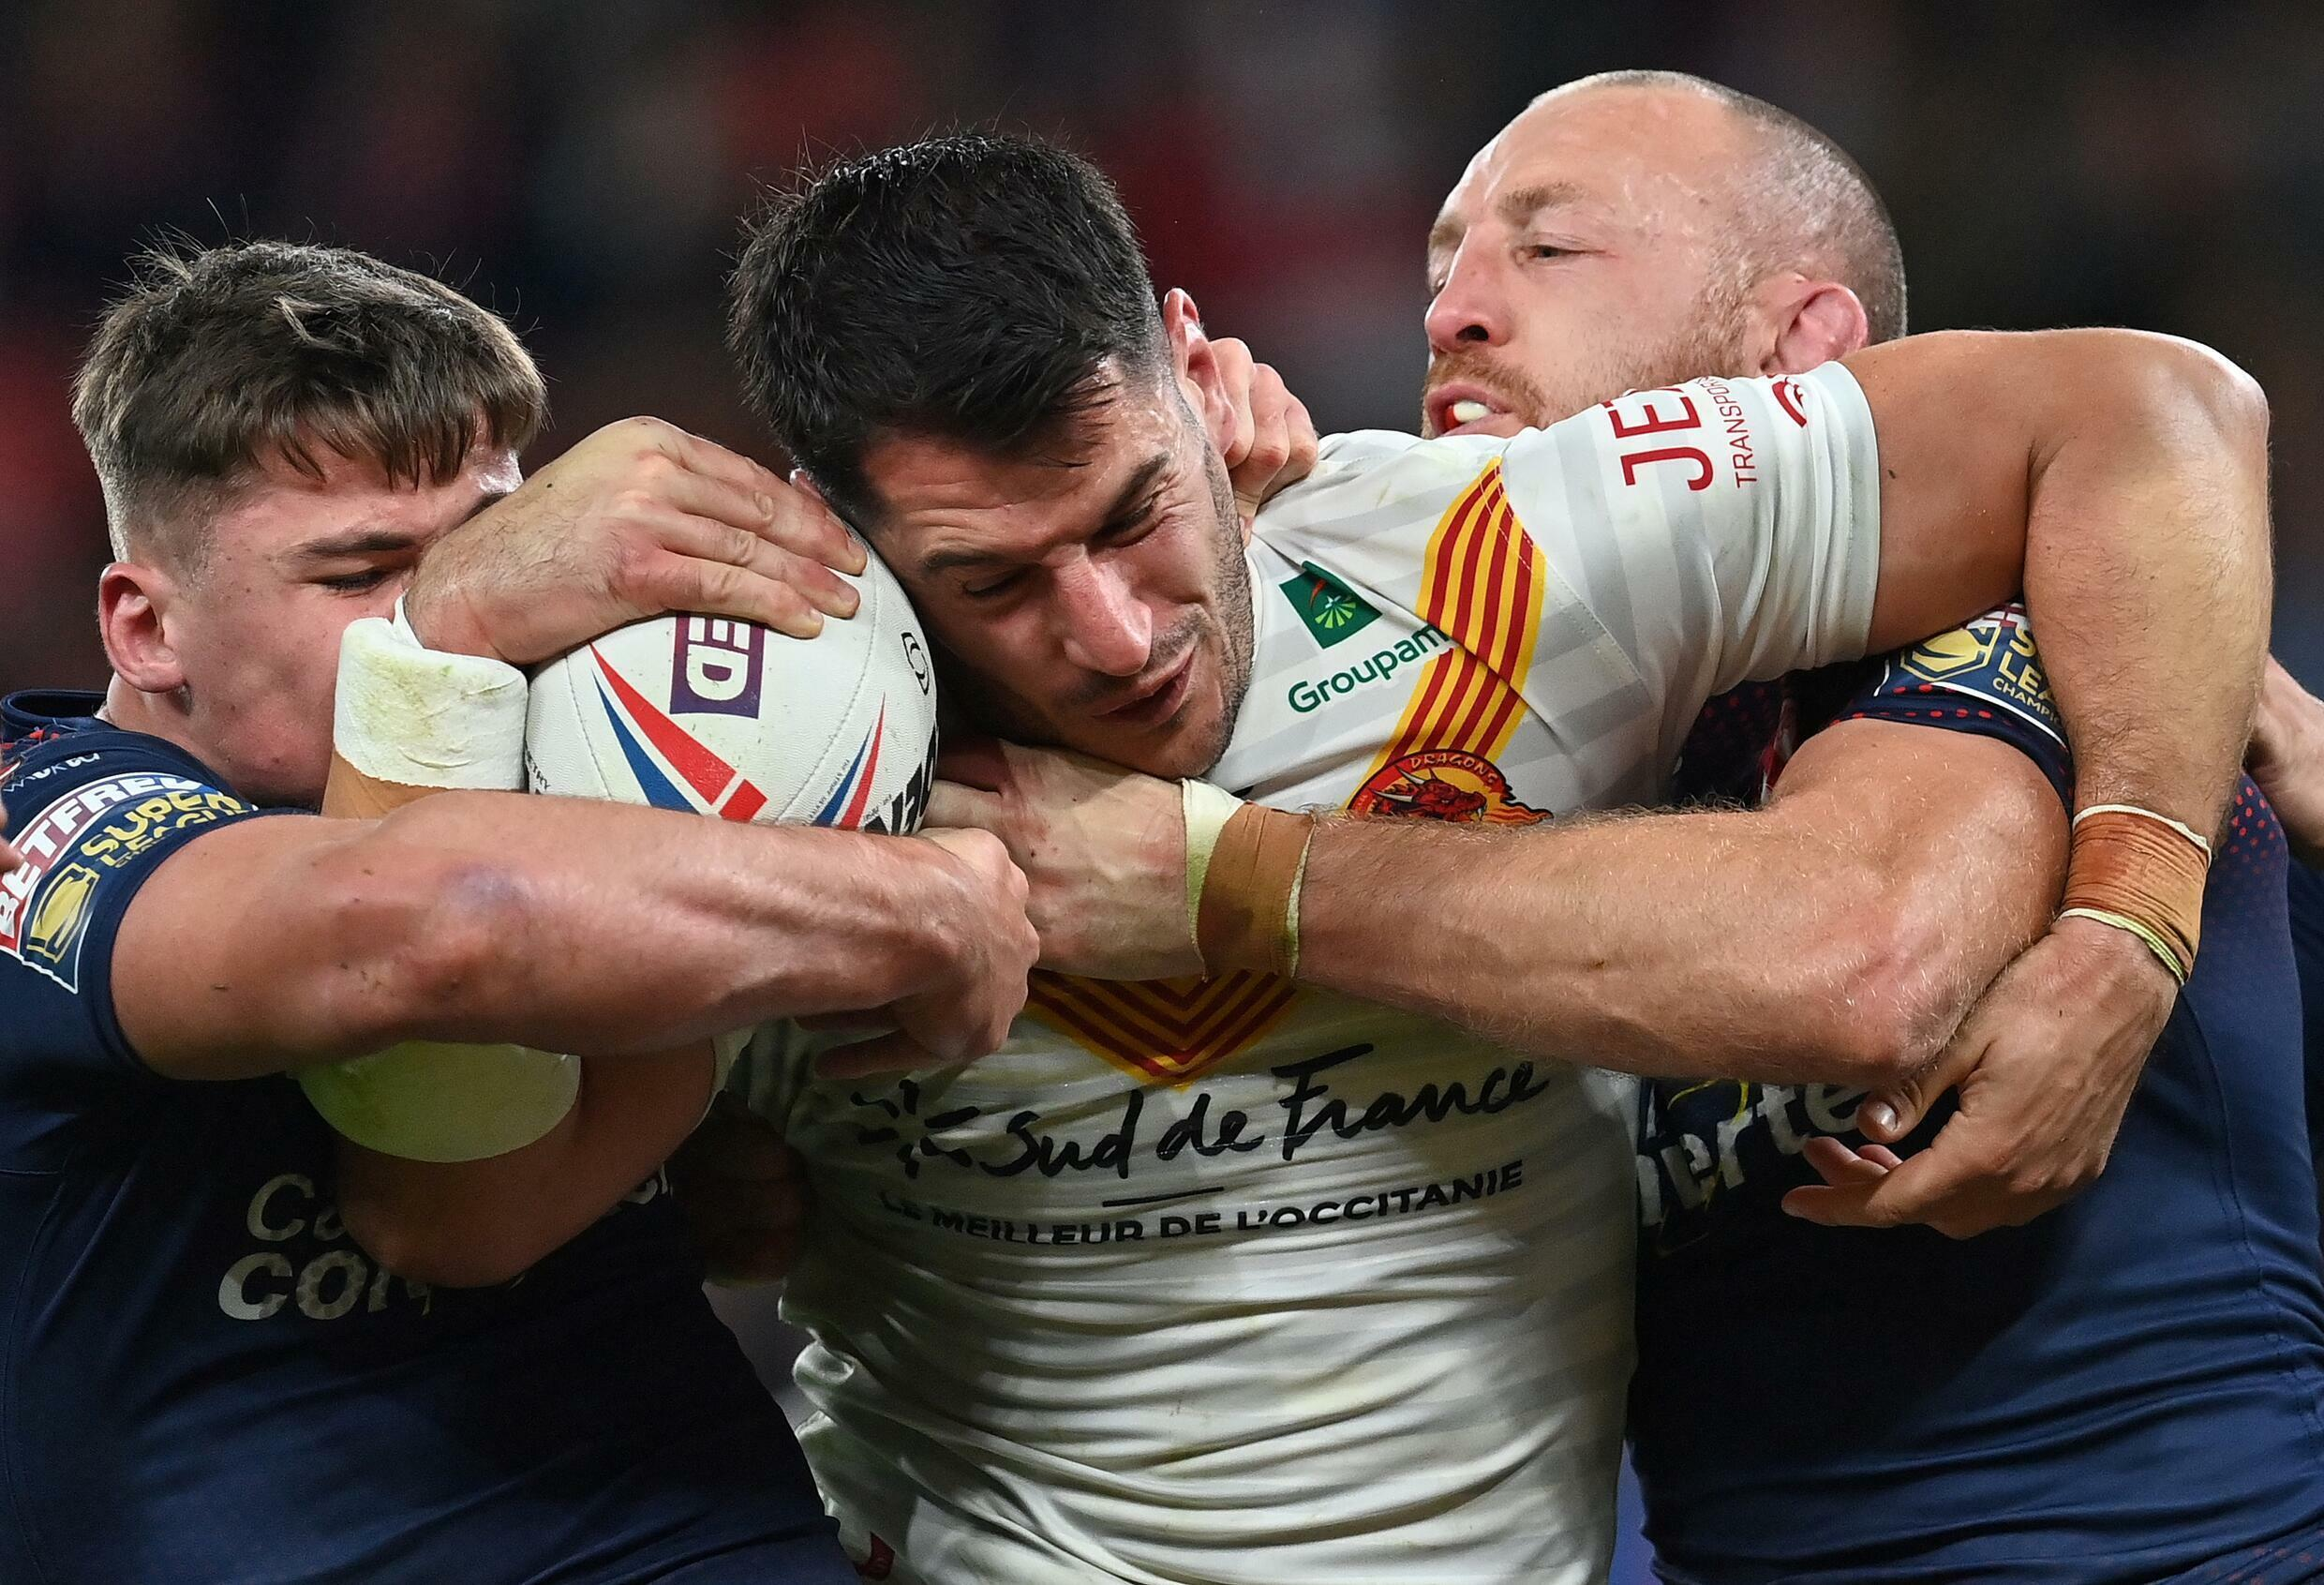 Catalan Dragons captain Benjamin Garcia faces two St Helens players in the Super League final on October 9, 2021 in Manchester